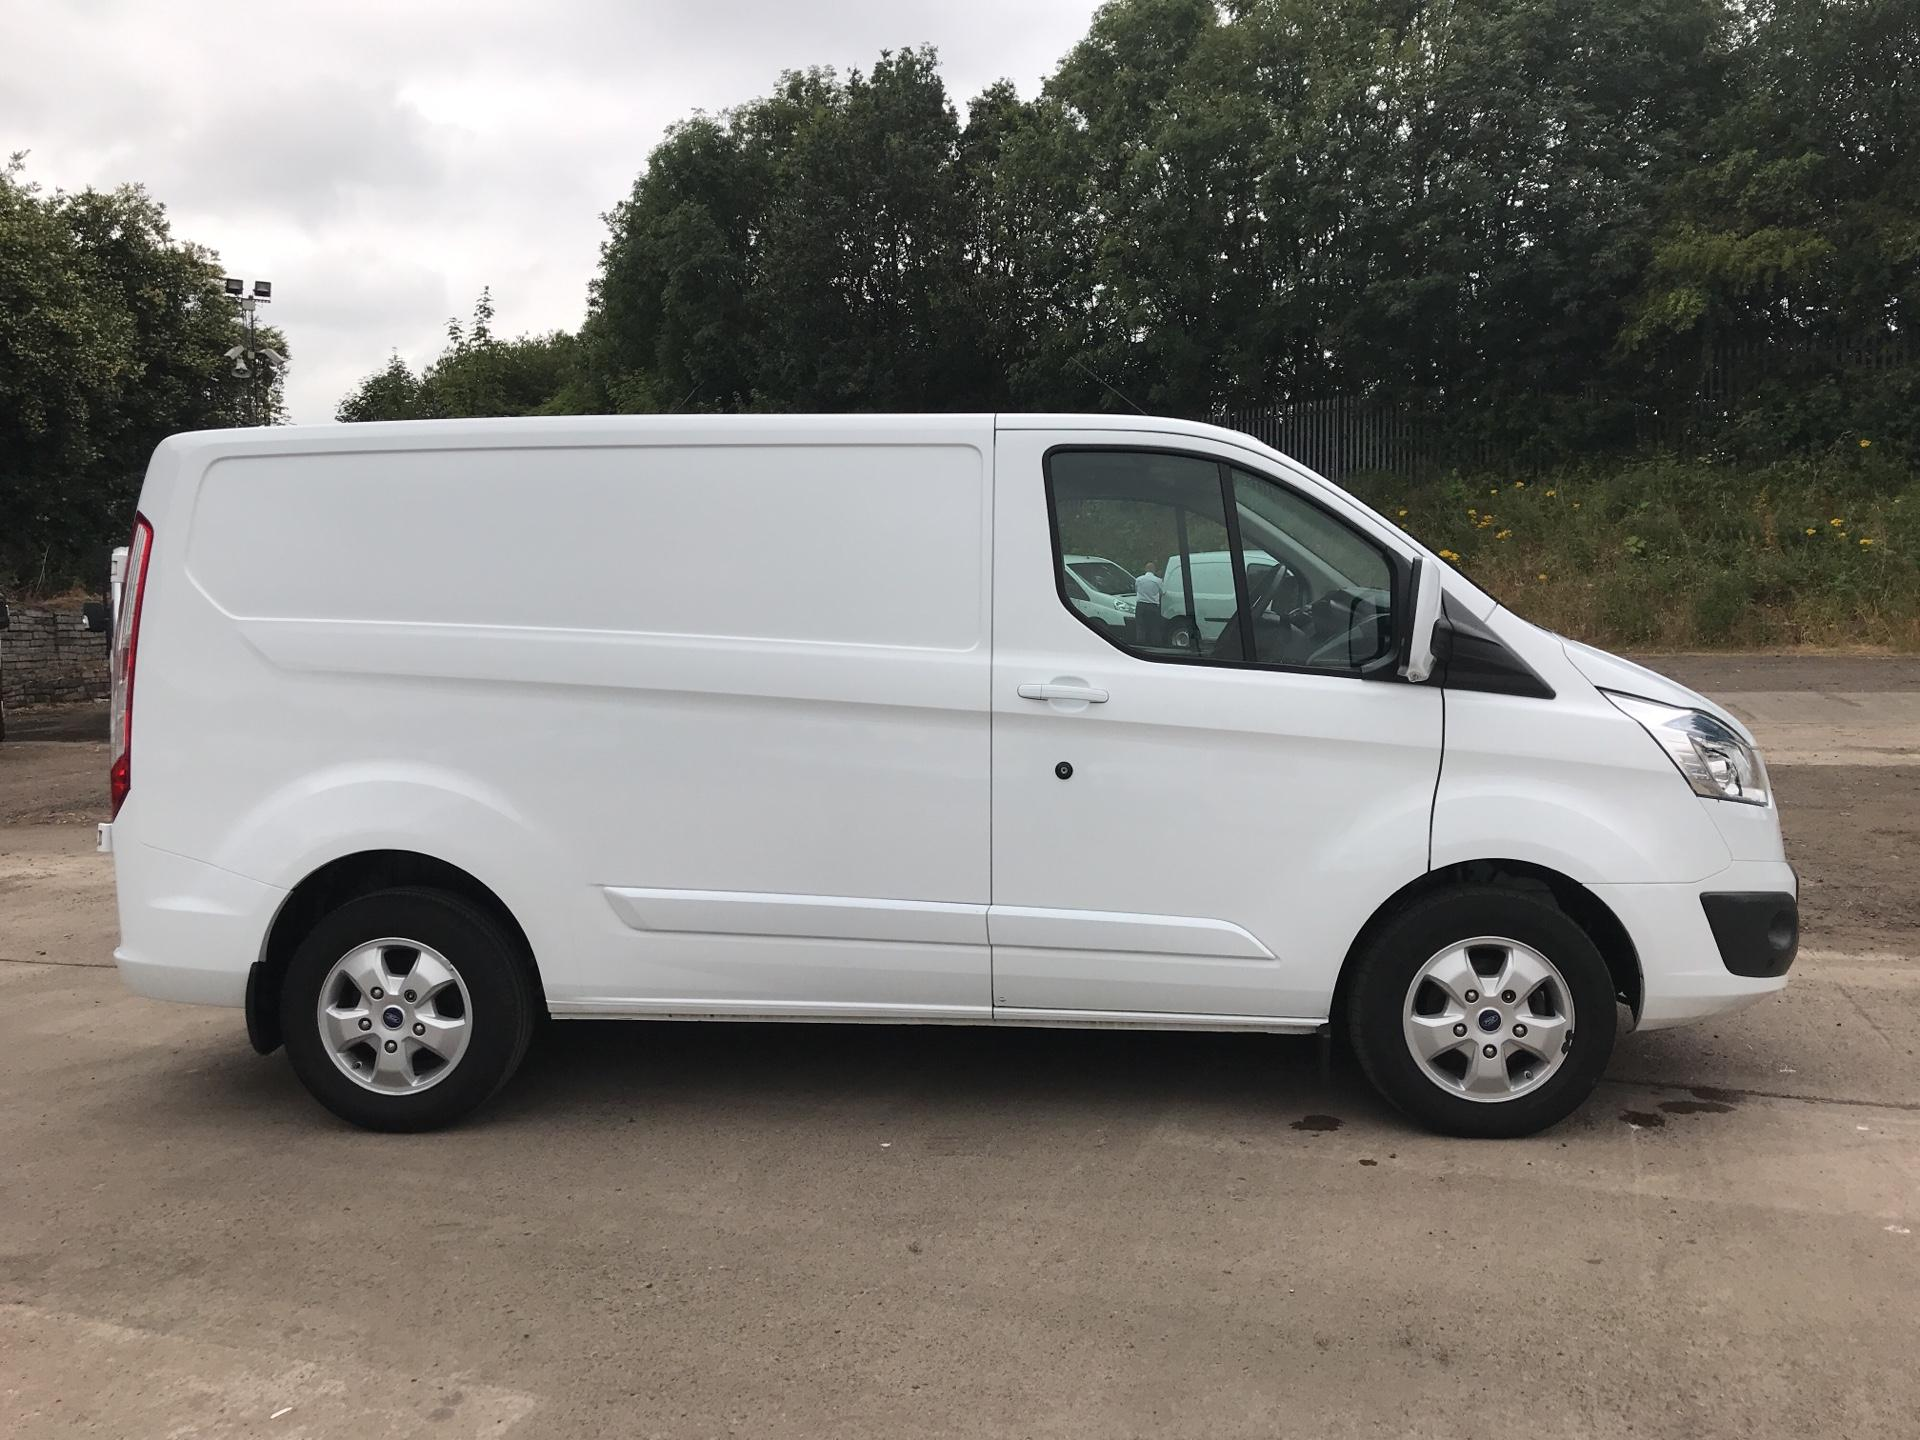 2016 Ford Transit Custom 270 L1 DIESEL FWD 2.2  TDCI 125PS LOW ROOF LIMITED VAN EURO 5 (NA16GKK) Image 2